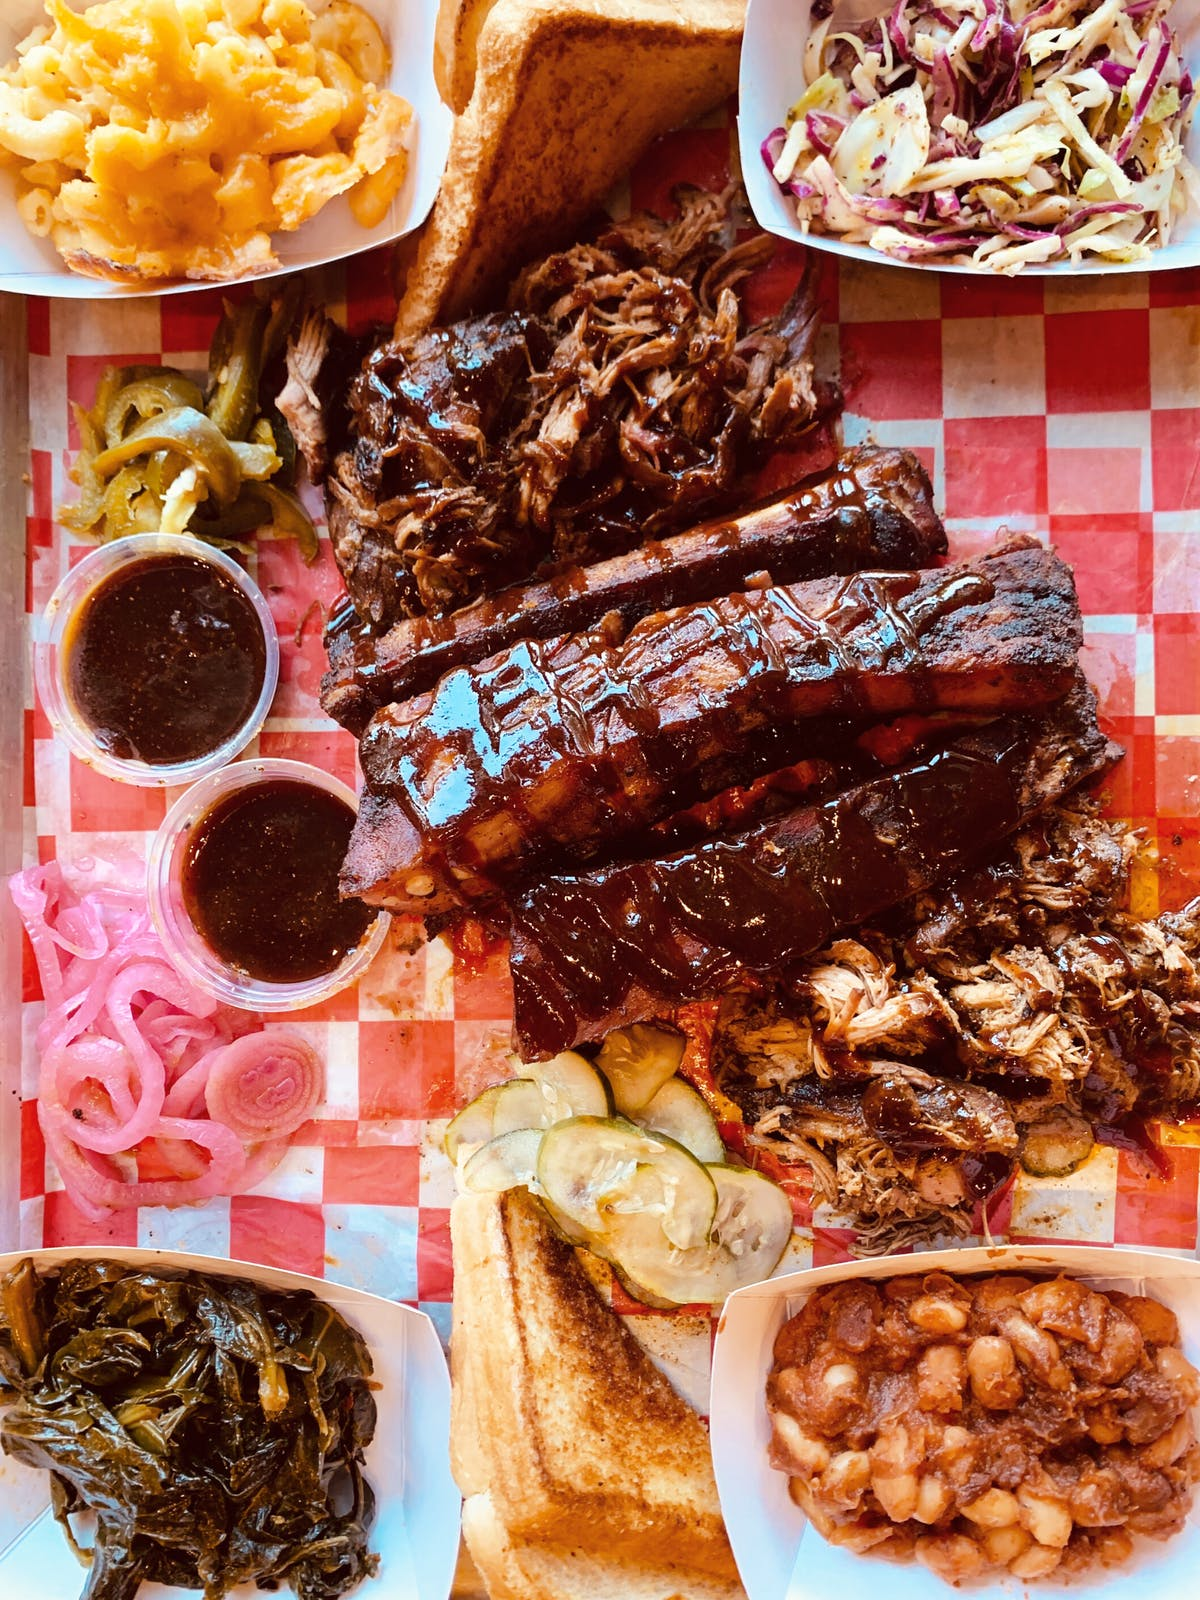 a tray with bbq meats, sauces, and sides